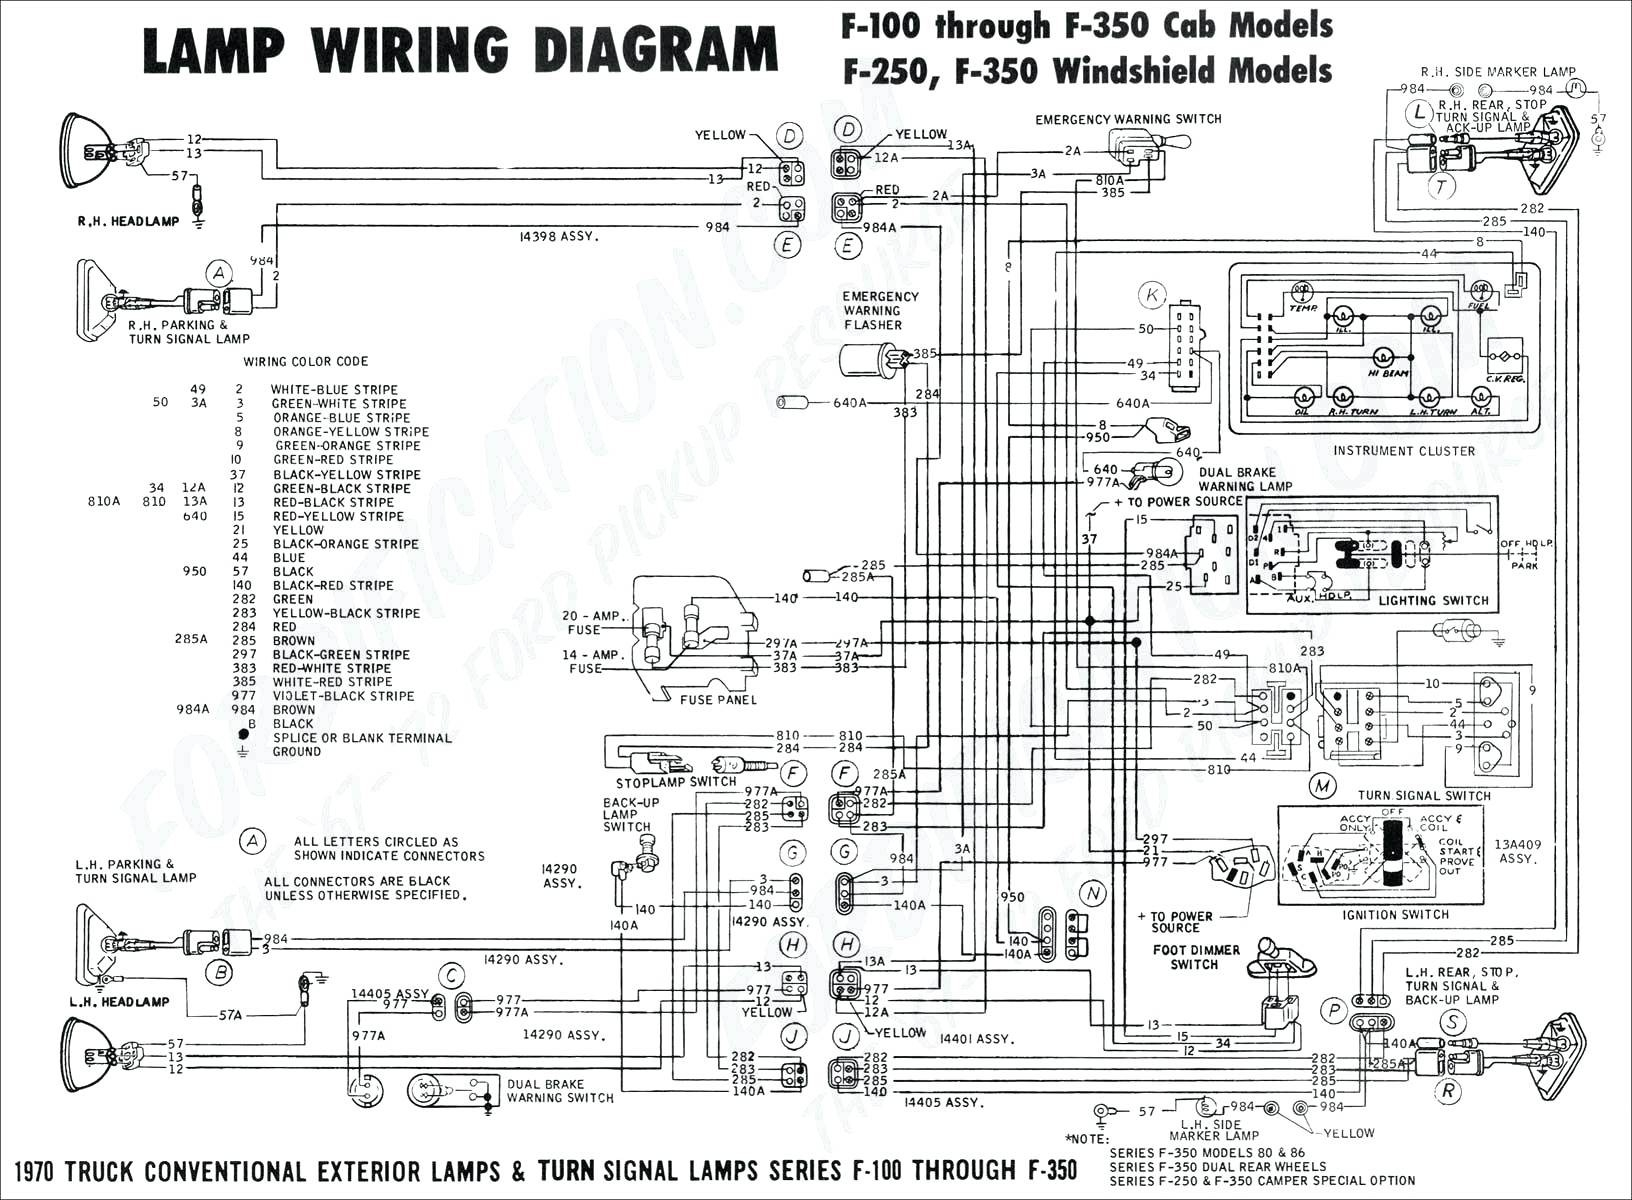 ford f150 wiring harness diagram Collection-Ford F150 Trailer Wiring Harness Diagram Inspirational ford F150 Trailer Wiring Harness Diagram 2005 Car Electrical In A 10-a